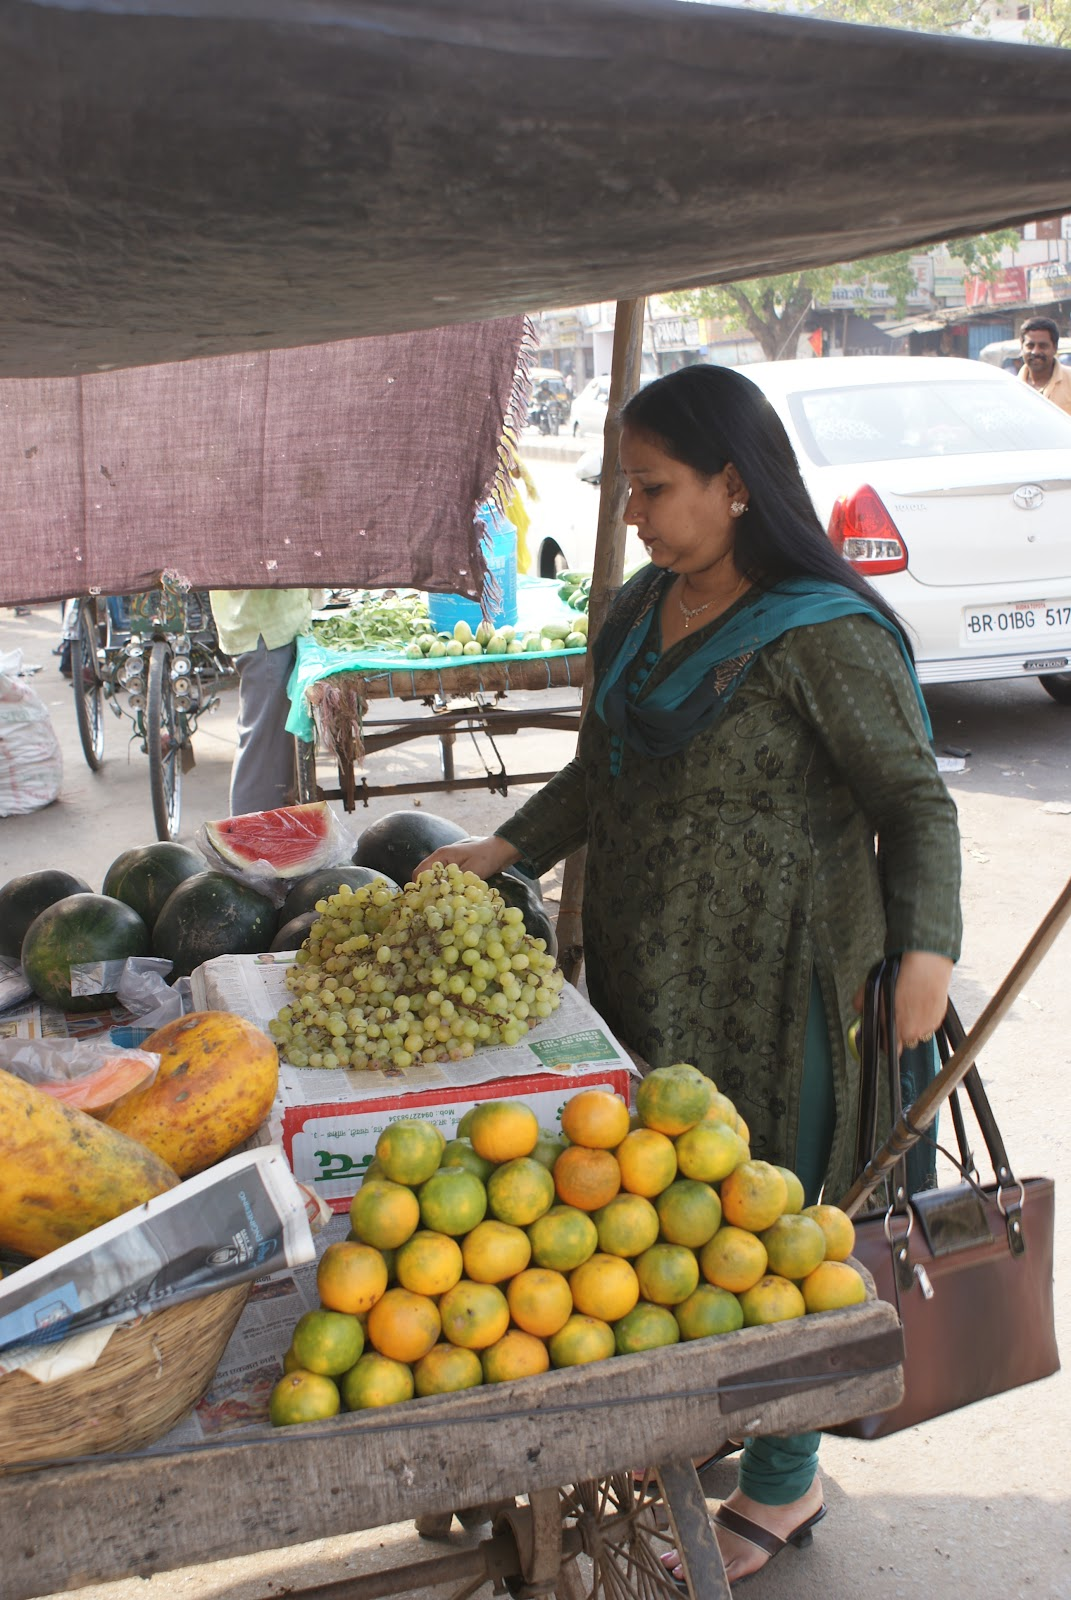 IndiaLiving: INDIA LEERY OF GENETIALLY MODIFIED FOODS